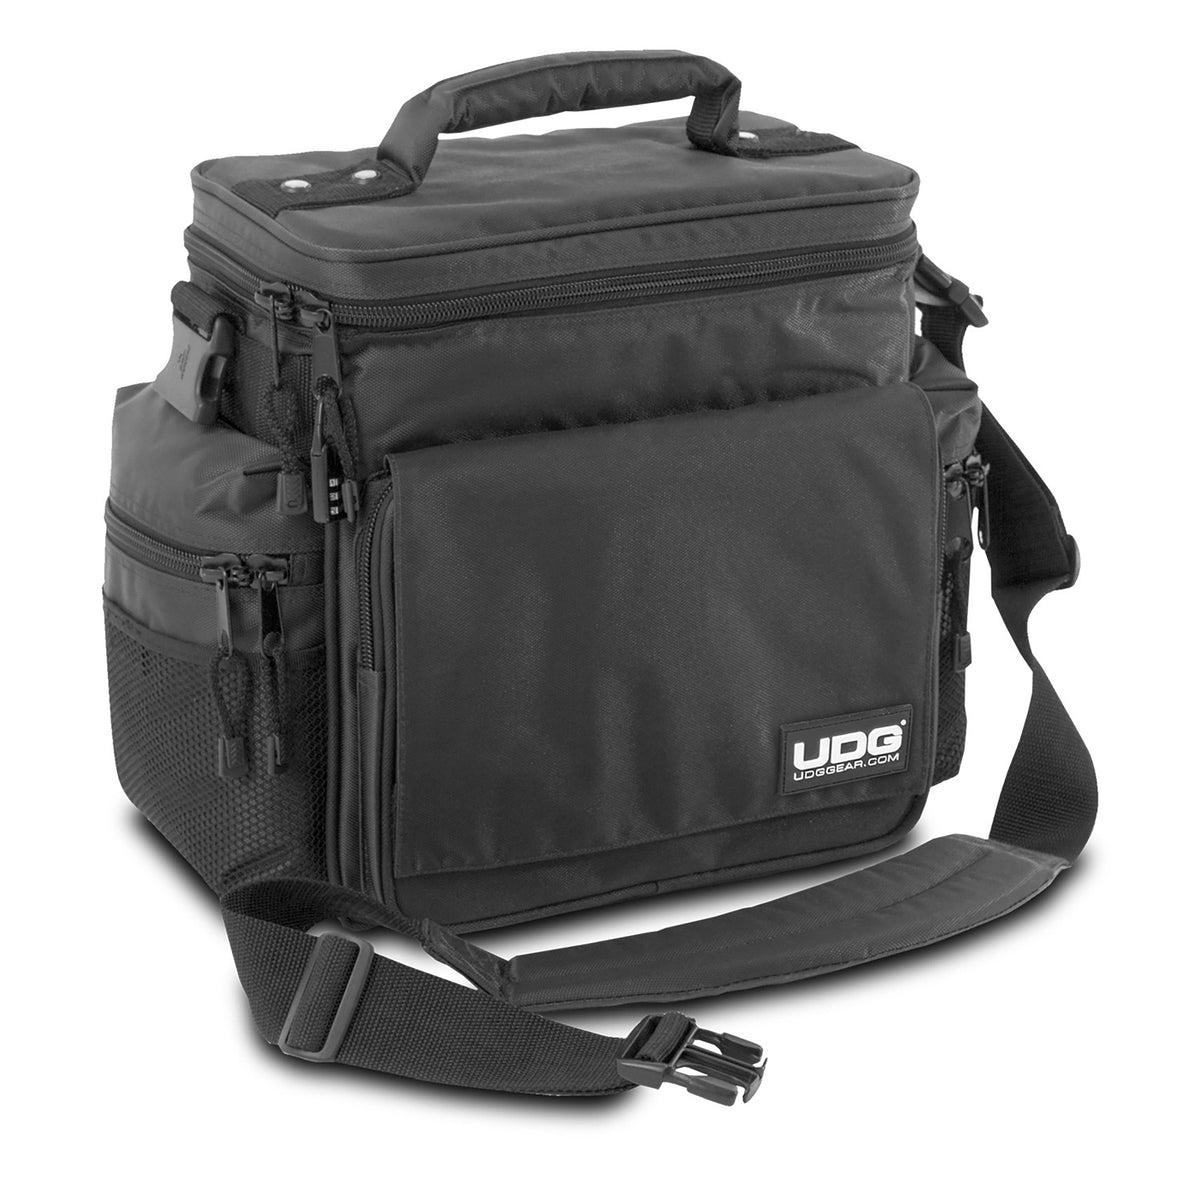 UDG: Sling DJ Bag - Black (U9630)